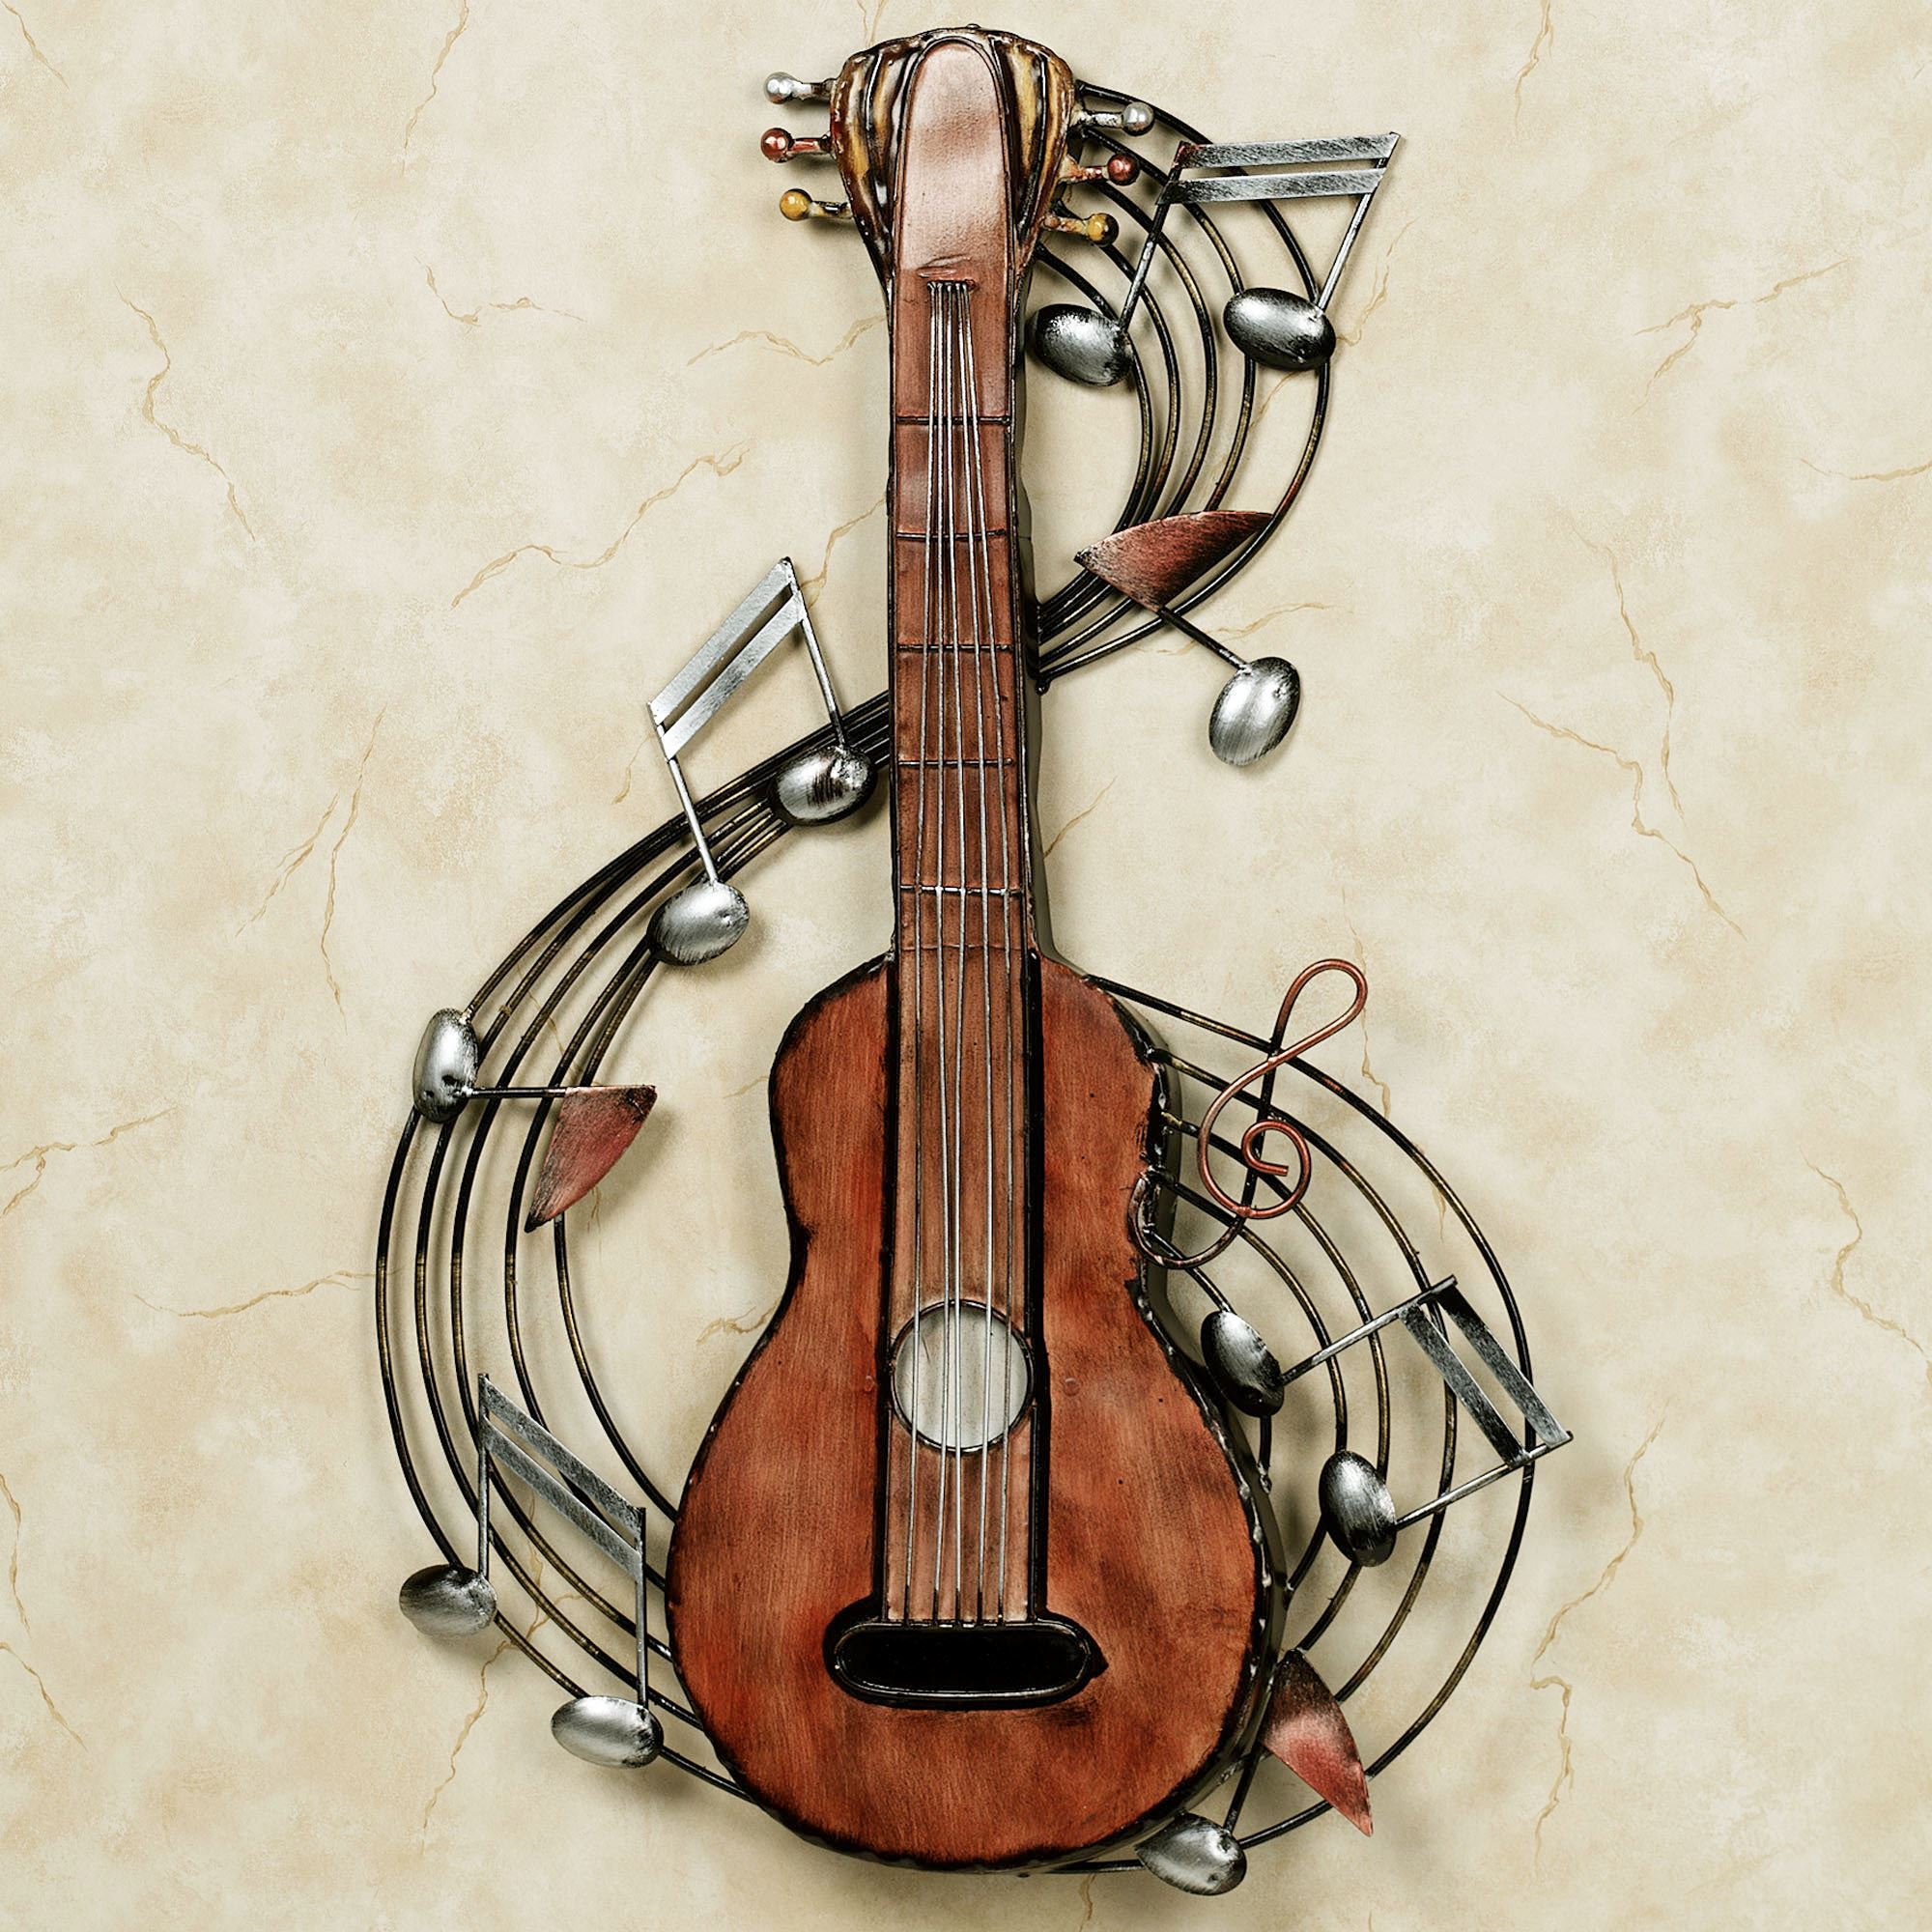 Gentil Kithara Guitar Metal Wall Art. Kithara Metal Wall Sculpture. Click To Expand